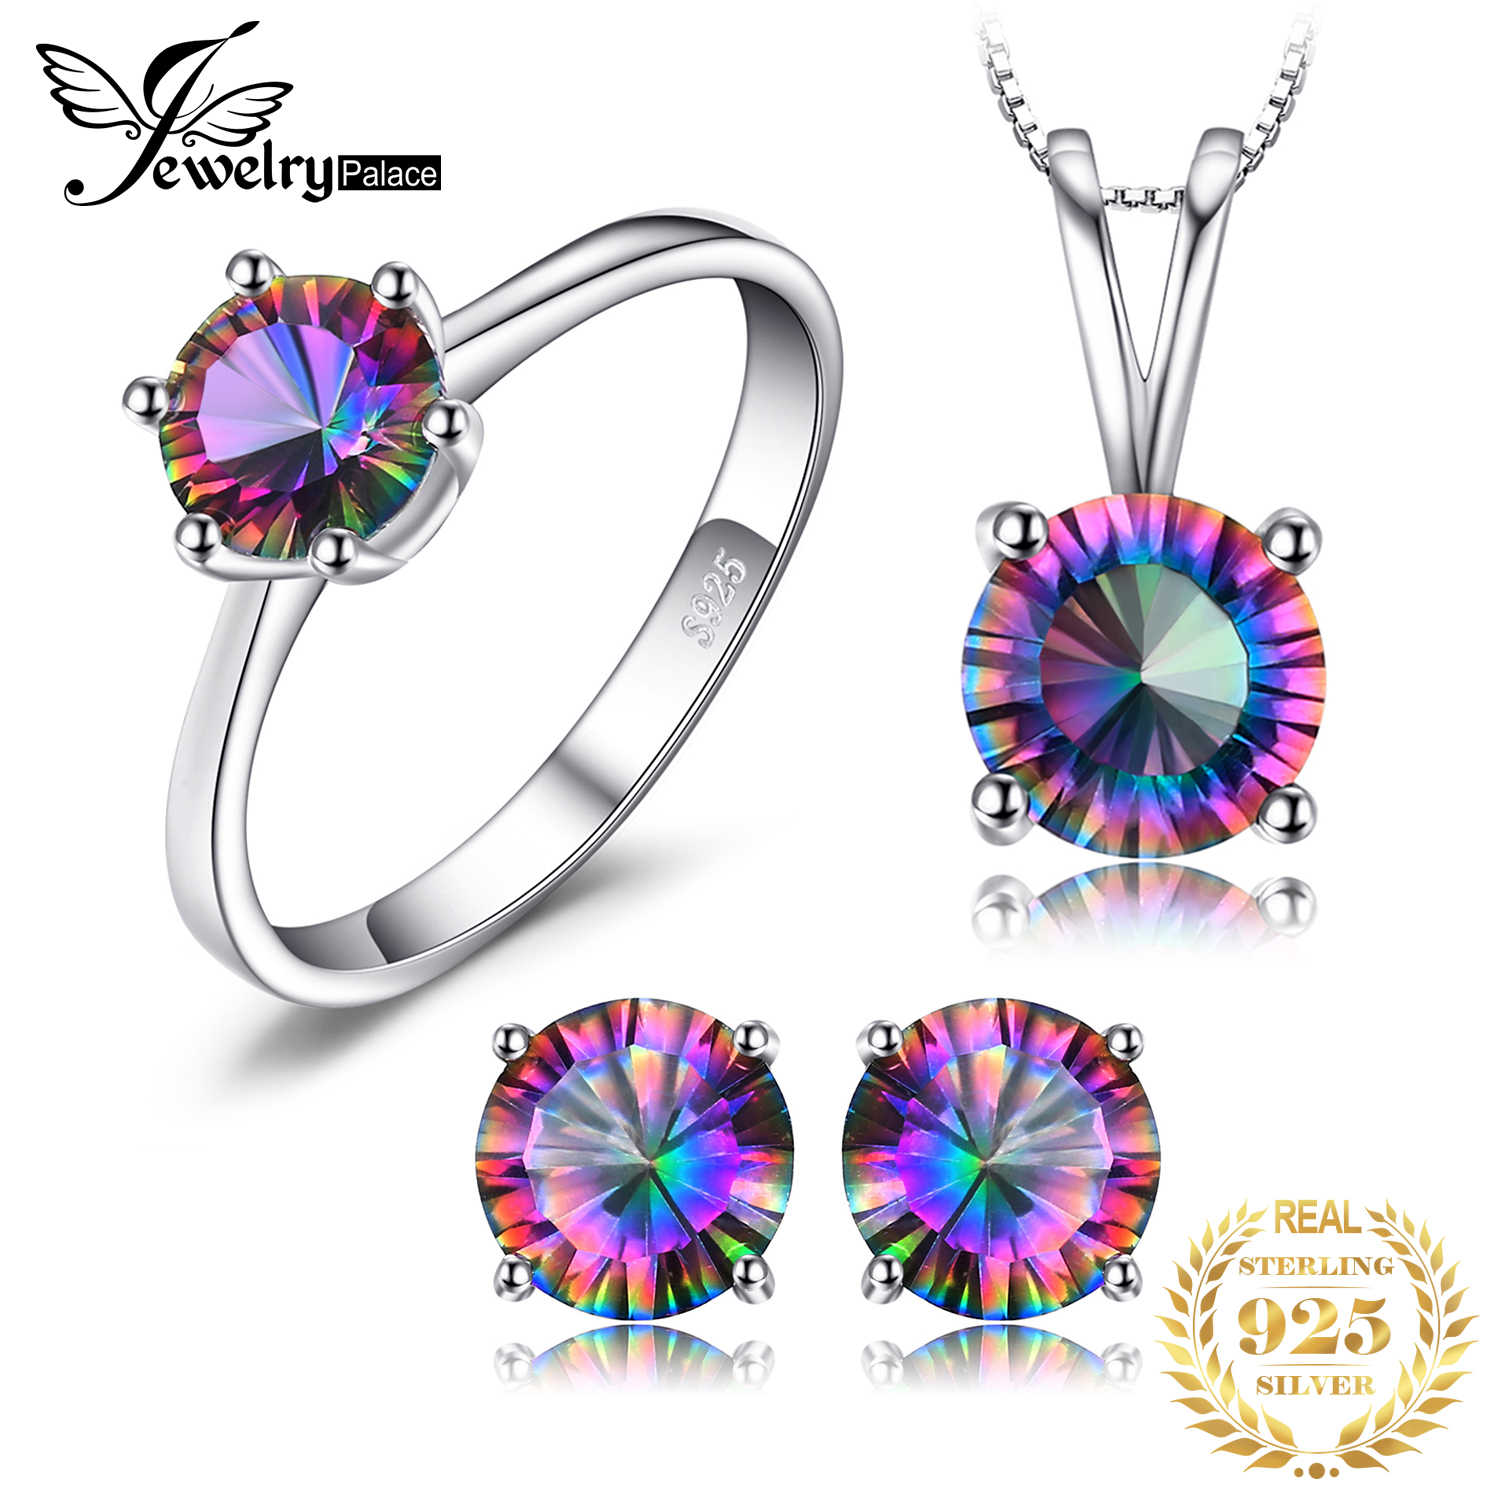 JewelryPalace Natural Rainbow Fire Mystic Topaz Pendants Necklaces Rings Earrings 925 Sterling Silver Jewelry Sets For Women